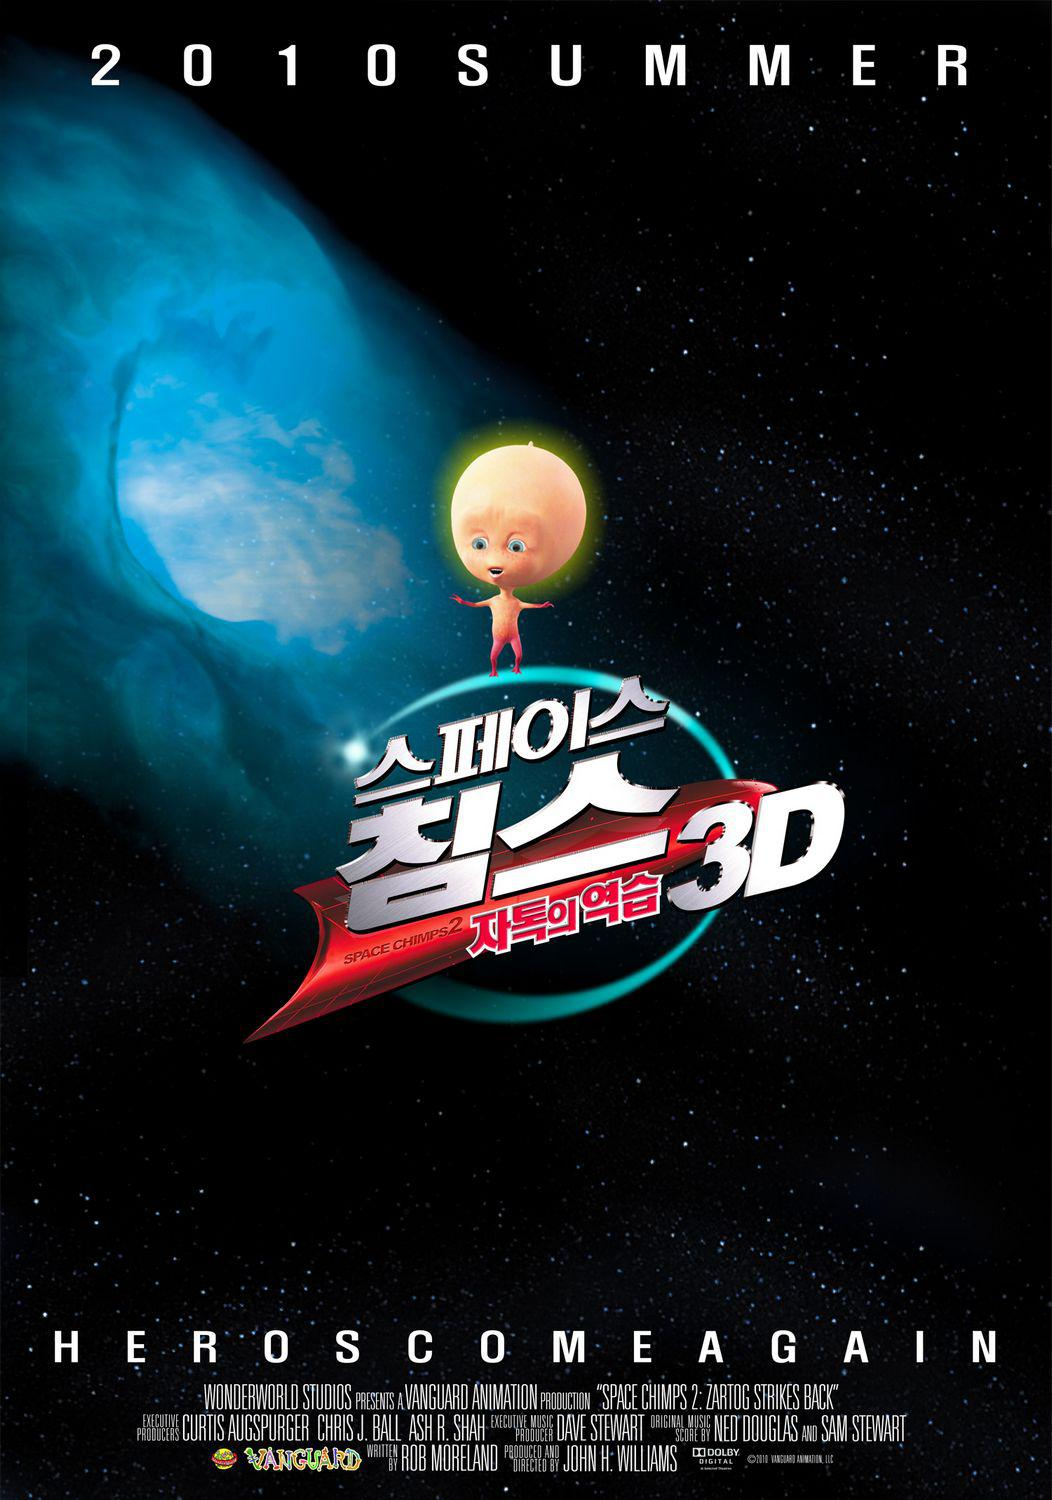 Space Chimps 2 - Ritorno di Zartog  - Space Chimps 2 - Zartog strike back -  poster